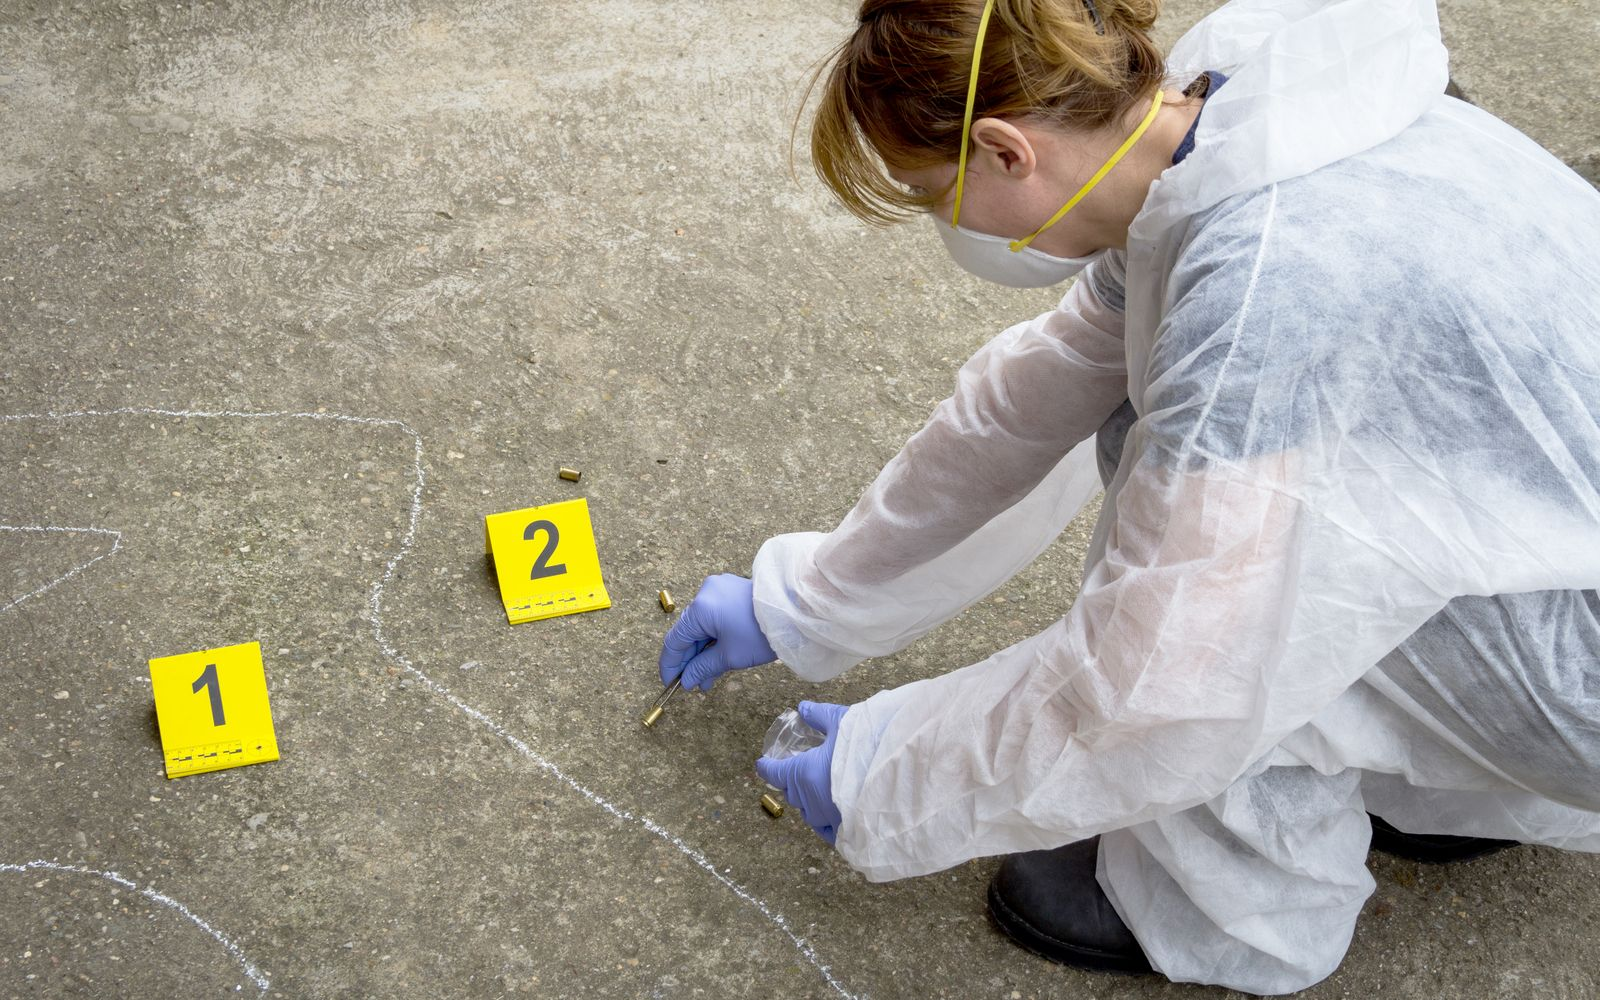 Woman forensic expert collects evidence at the crime scene